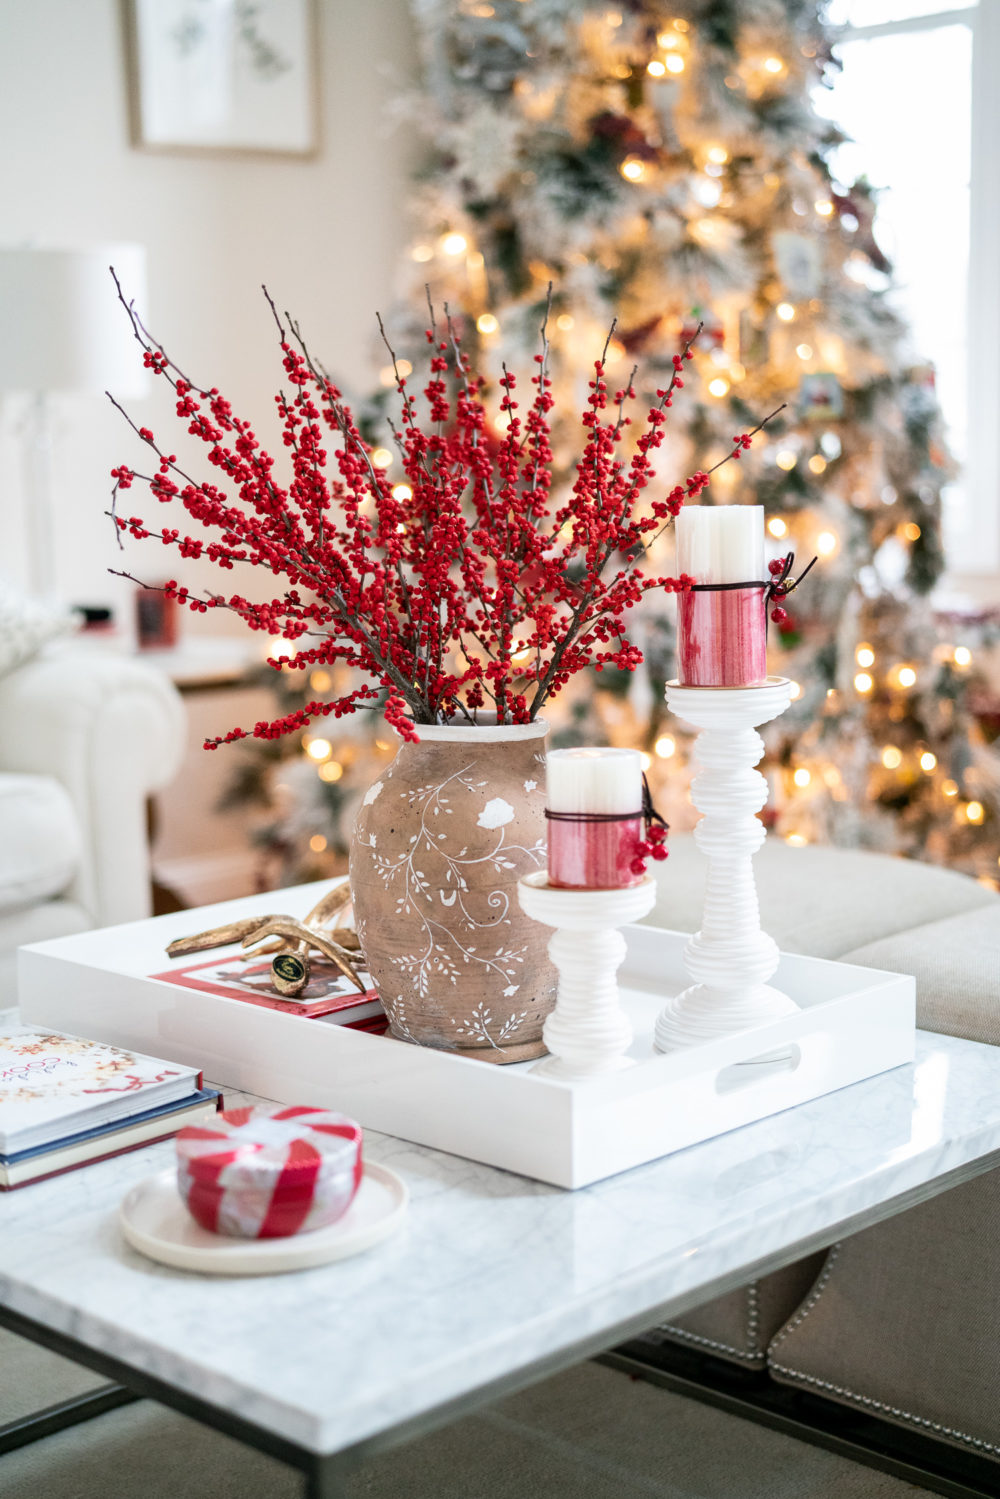 Petite Fashion Blog | Our Home for the Holidays | Christmas Decor | Flocked Christmas Tree | Christmas Pillows